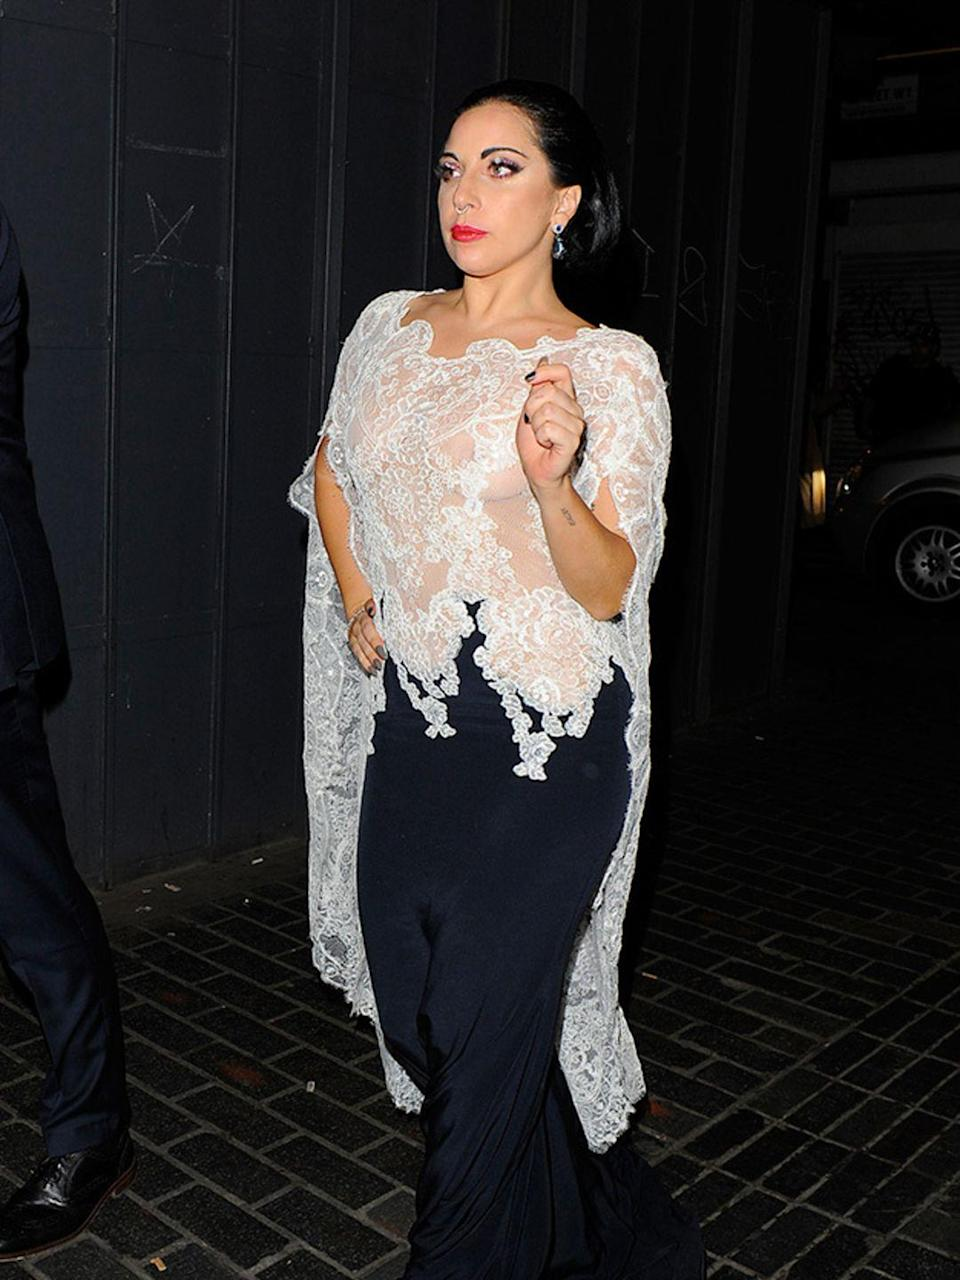 <p>Lady Gaga leaves the O2 Arena, London, October 2014.</p>